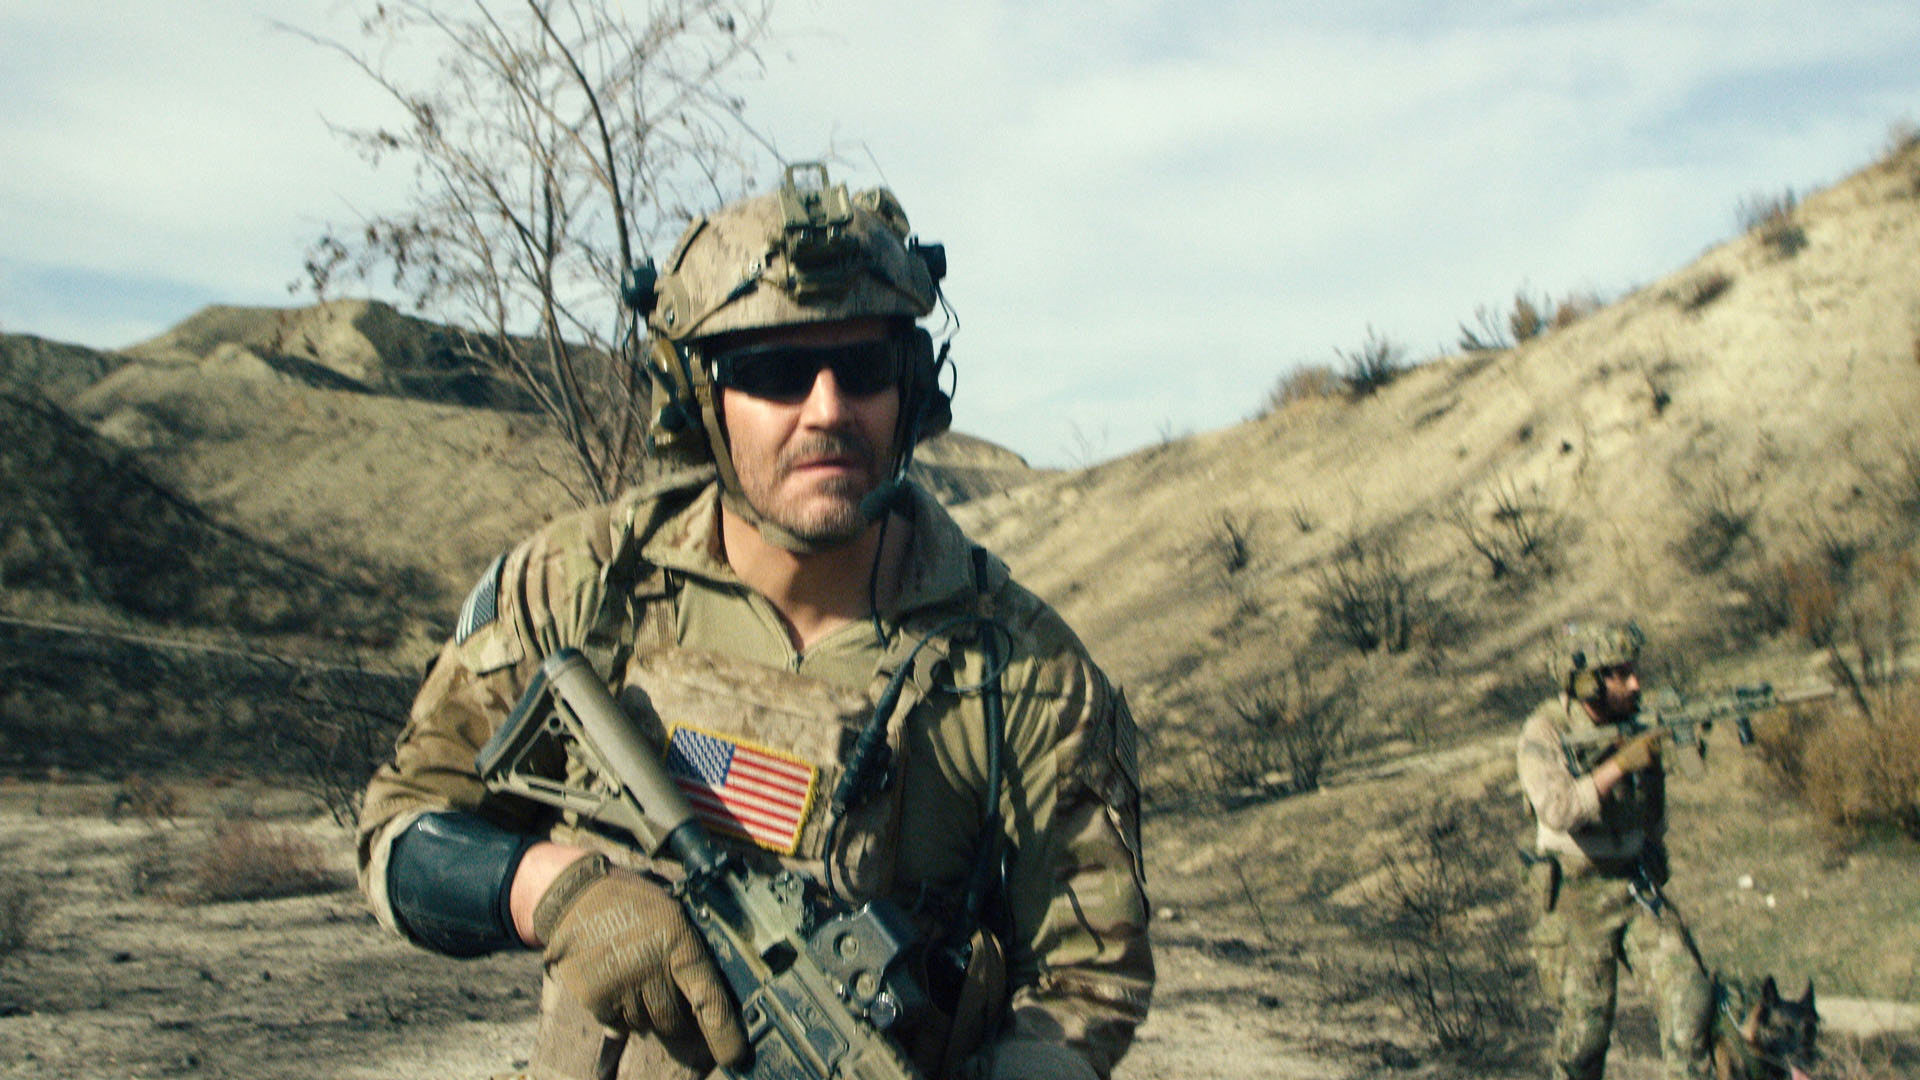 Watch SEAL Team Season 1 Episode 16: Never Get Out of the Boat - Full show  on CBS All Access